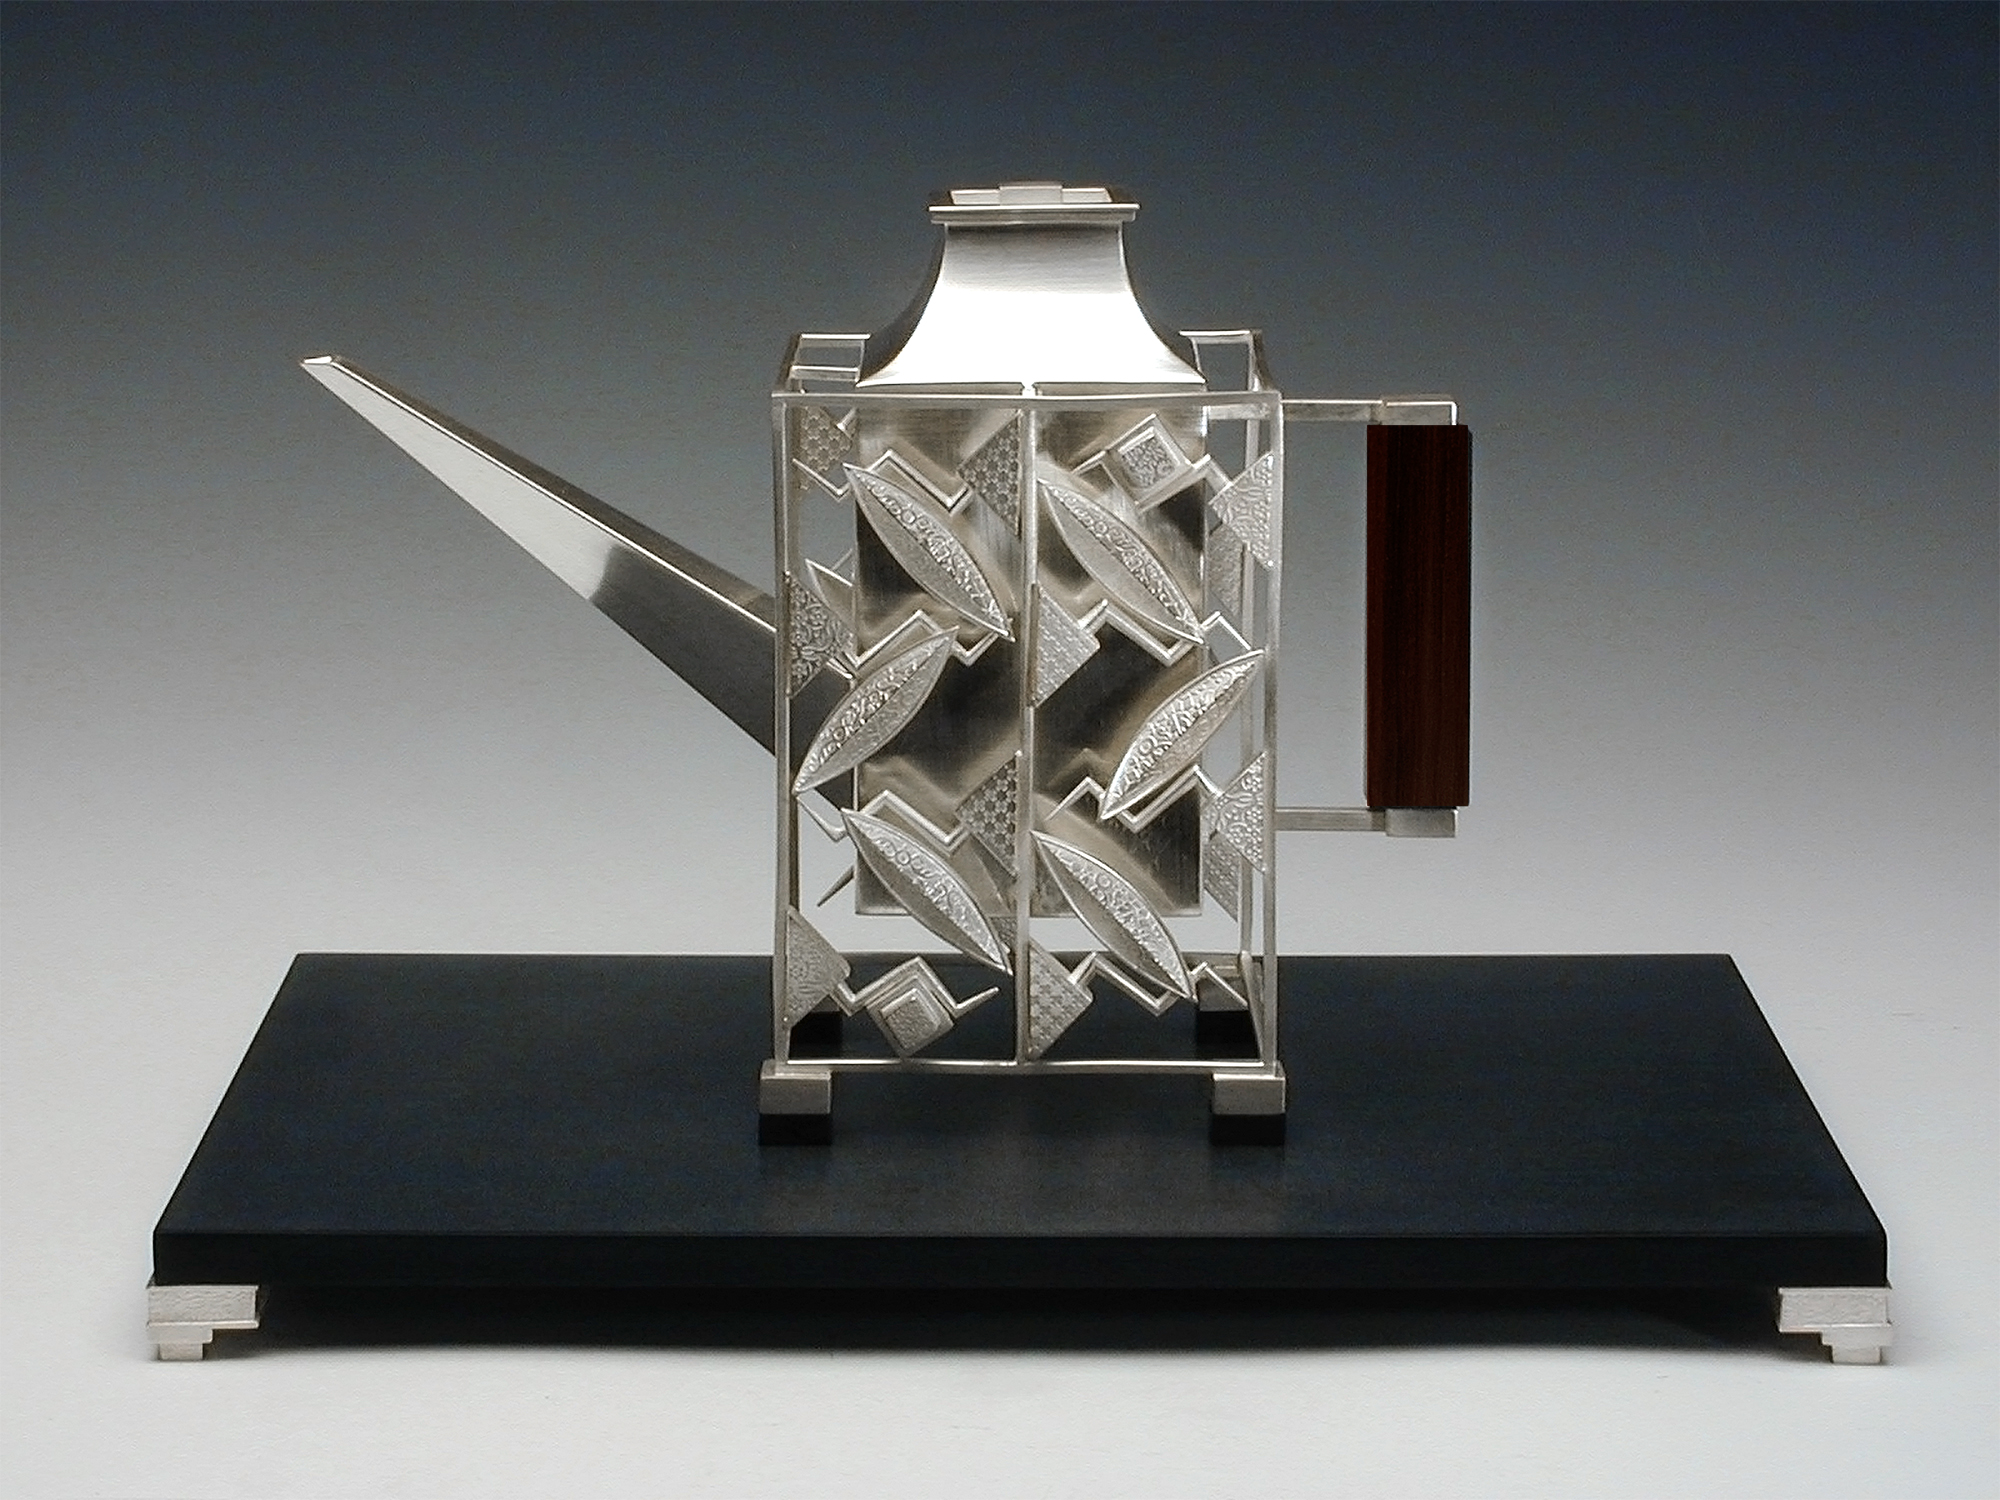 Square Teapot  |  2001  |  sterling silver, micarta  |   12 x 12 x 8.5 inches